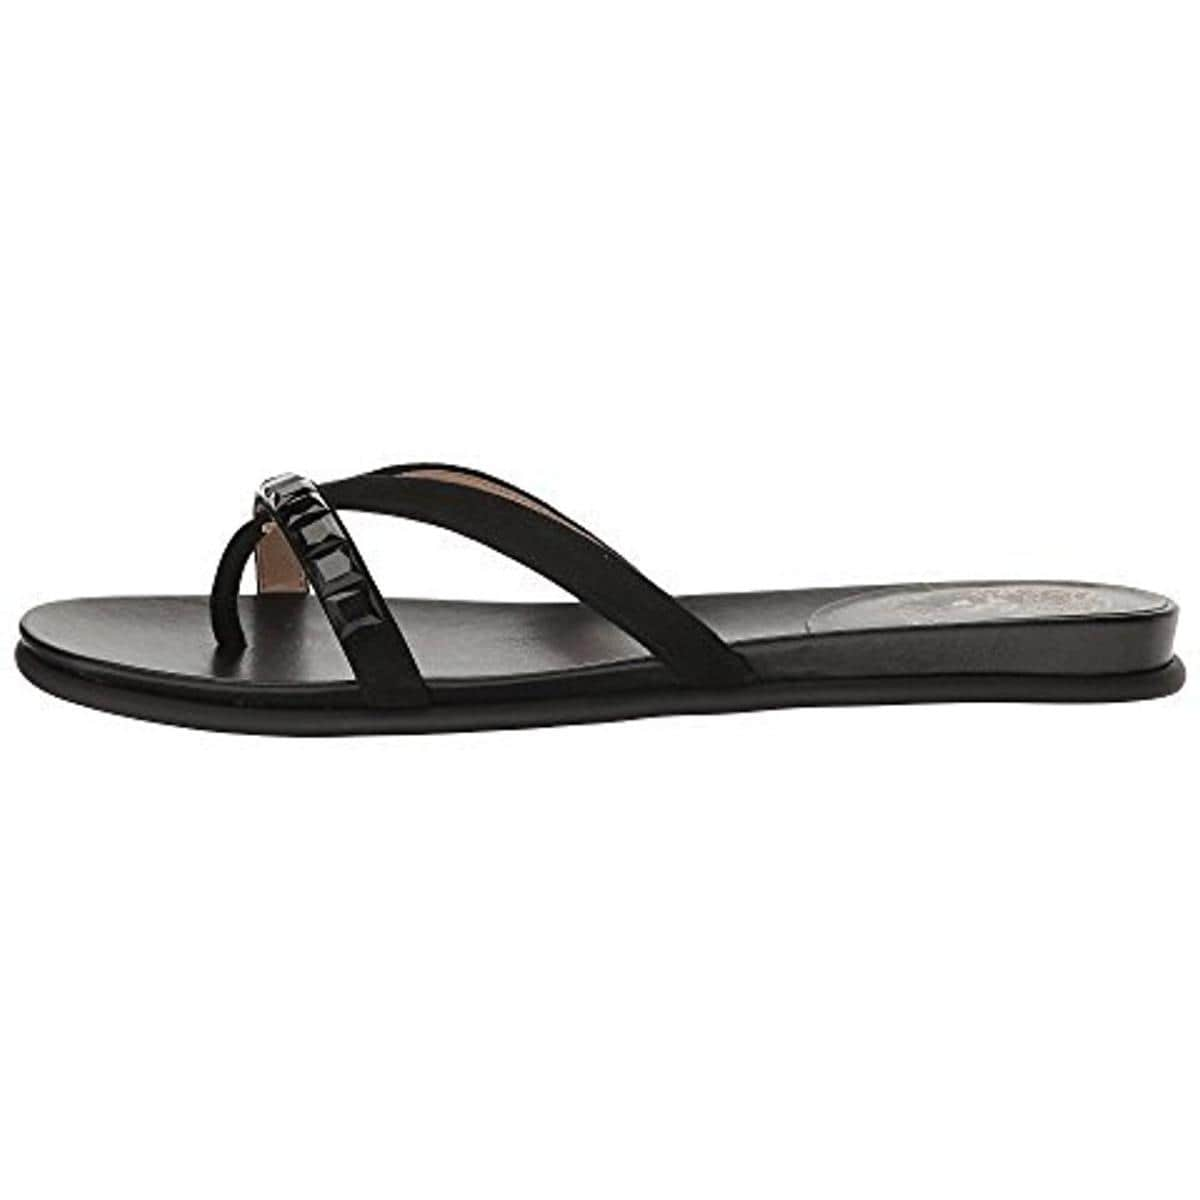 78d29240849e Shop Vince Camuto Womens Eddinal Flat Sandals Casual Open Toe - Free  Shipping On Orders Over  45 - Overstock - 21139561